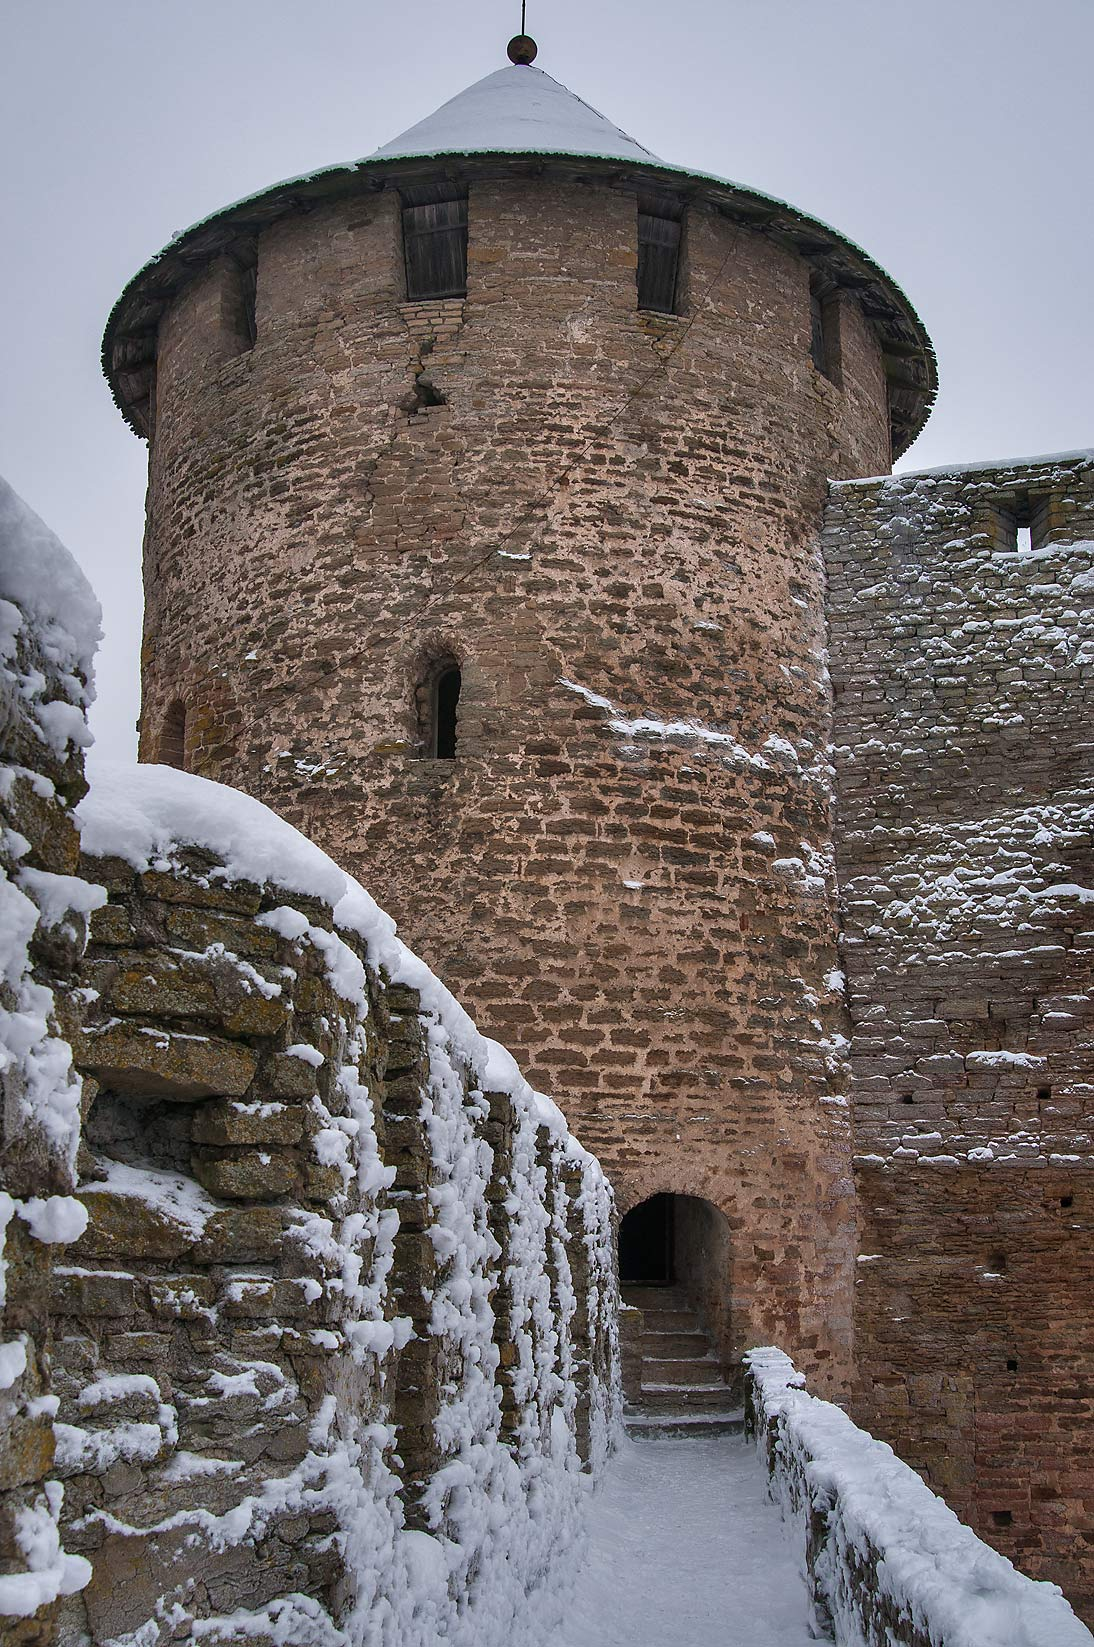 Round tower of Ivan Gorod Fortress, view from walls. Leningrad Region, Russia